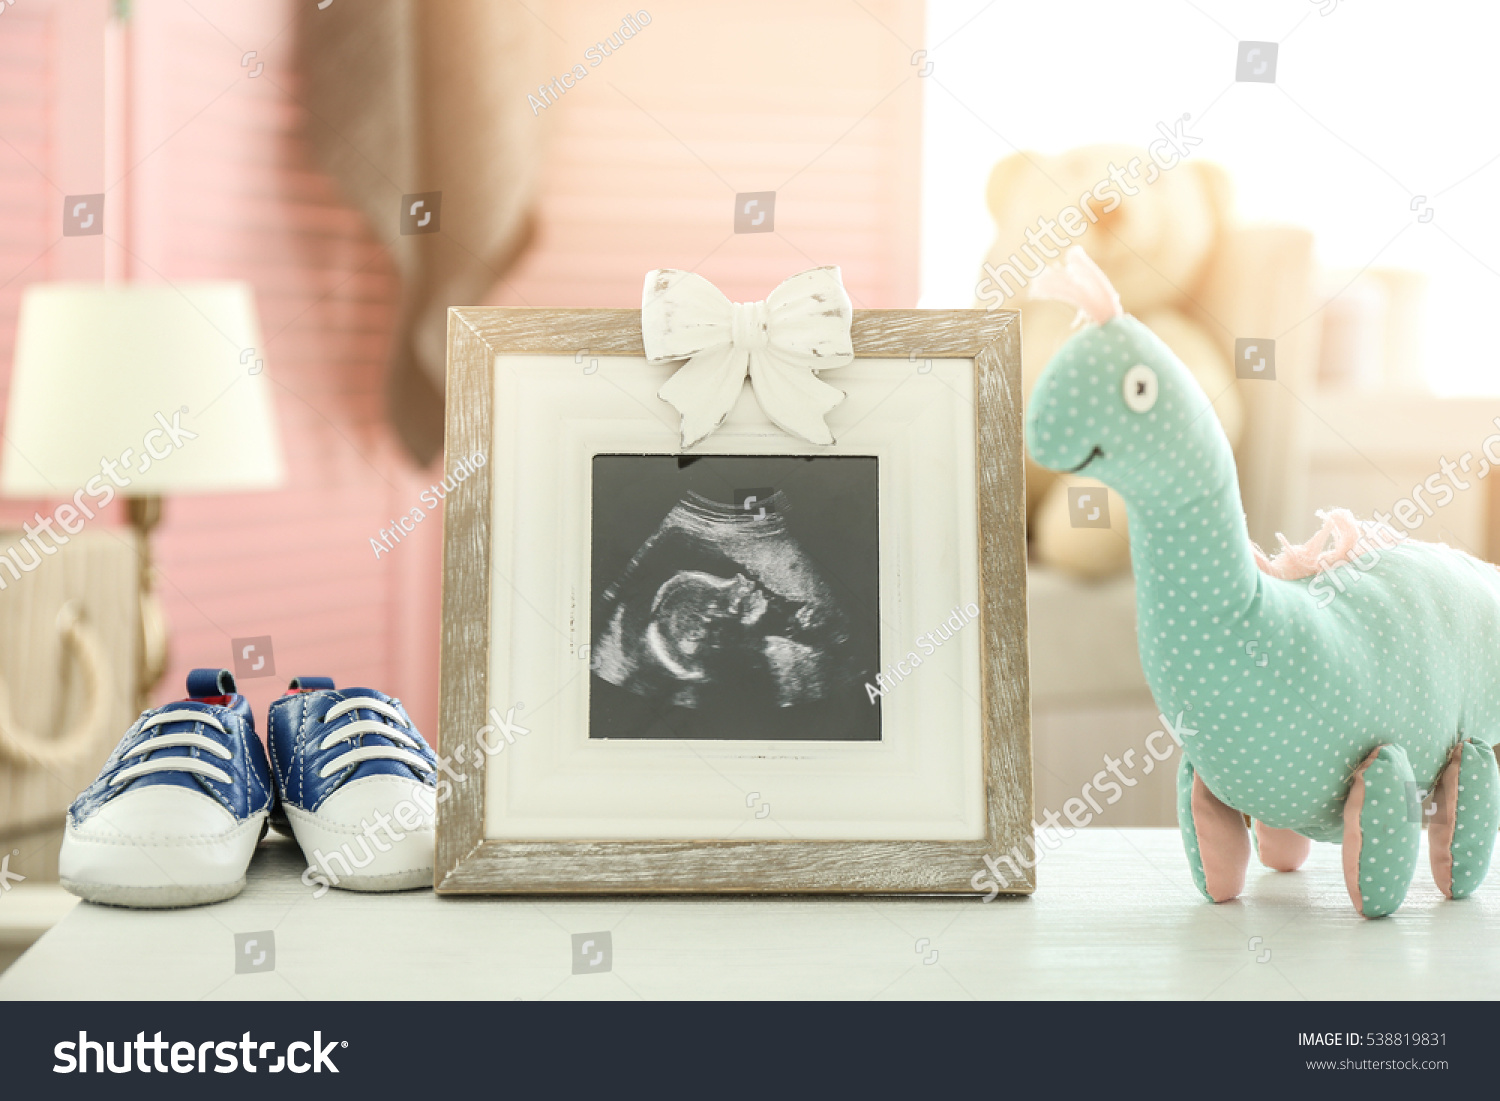 Frame ultrasound photo toy baby shoes stock photo 538819831 frame with ultrasound photo toy and baby shoes on table jeuxipadfo Image collections